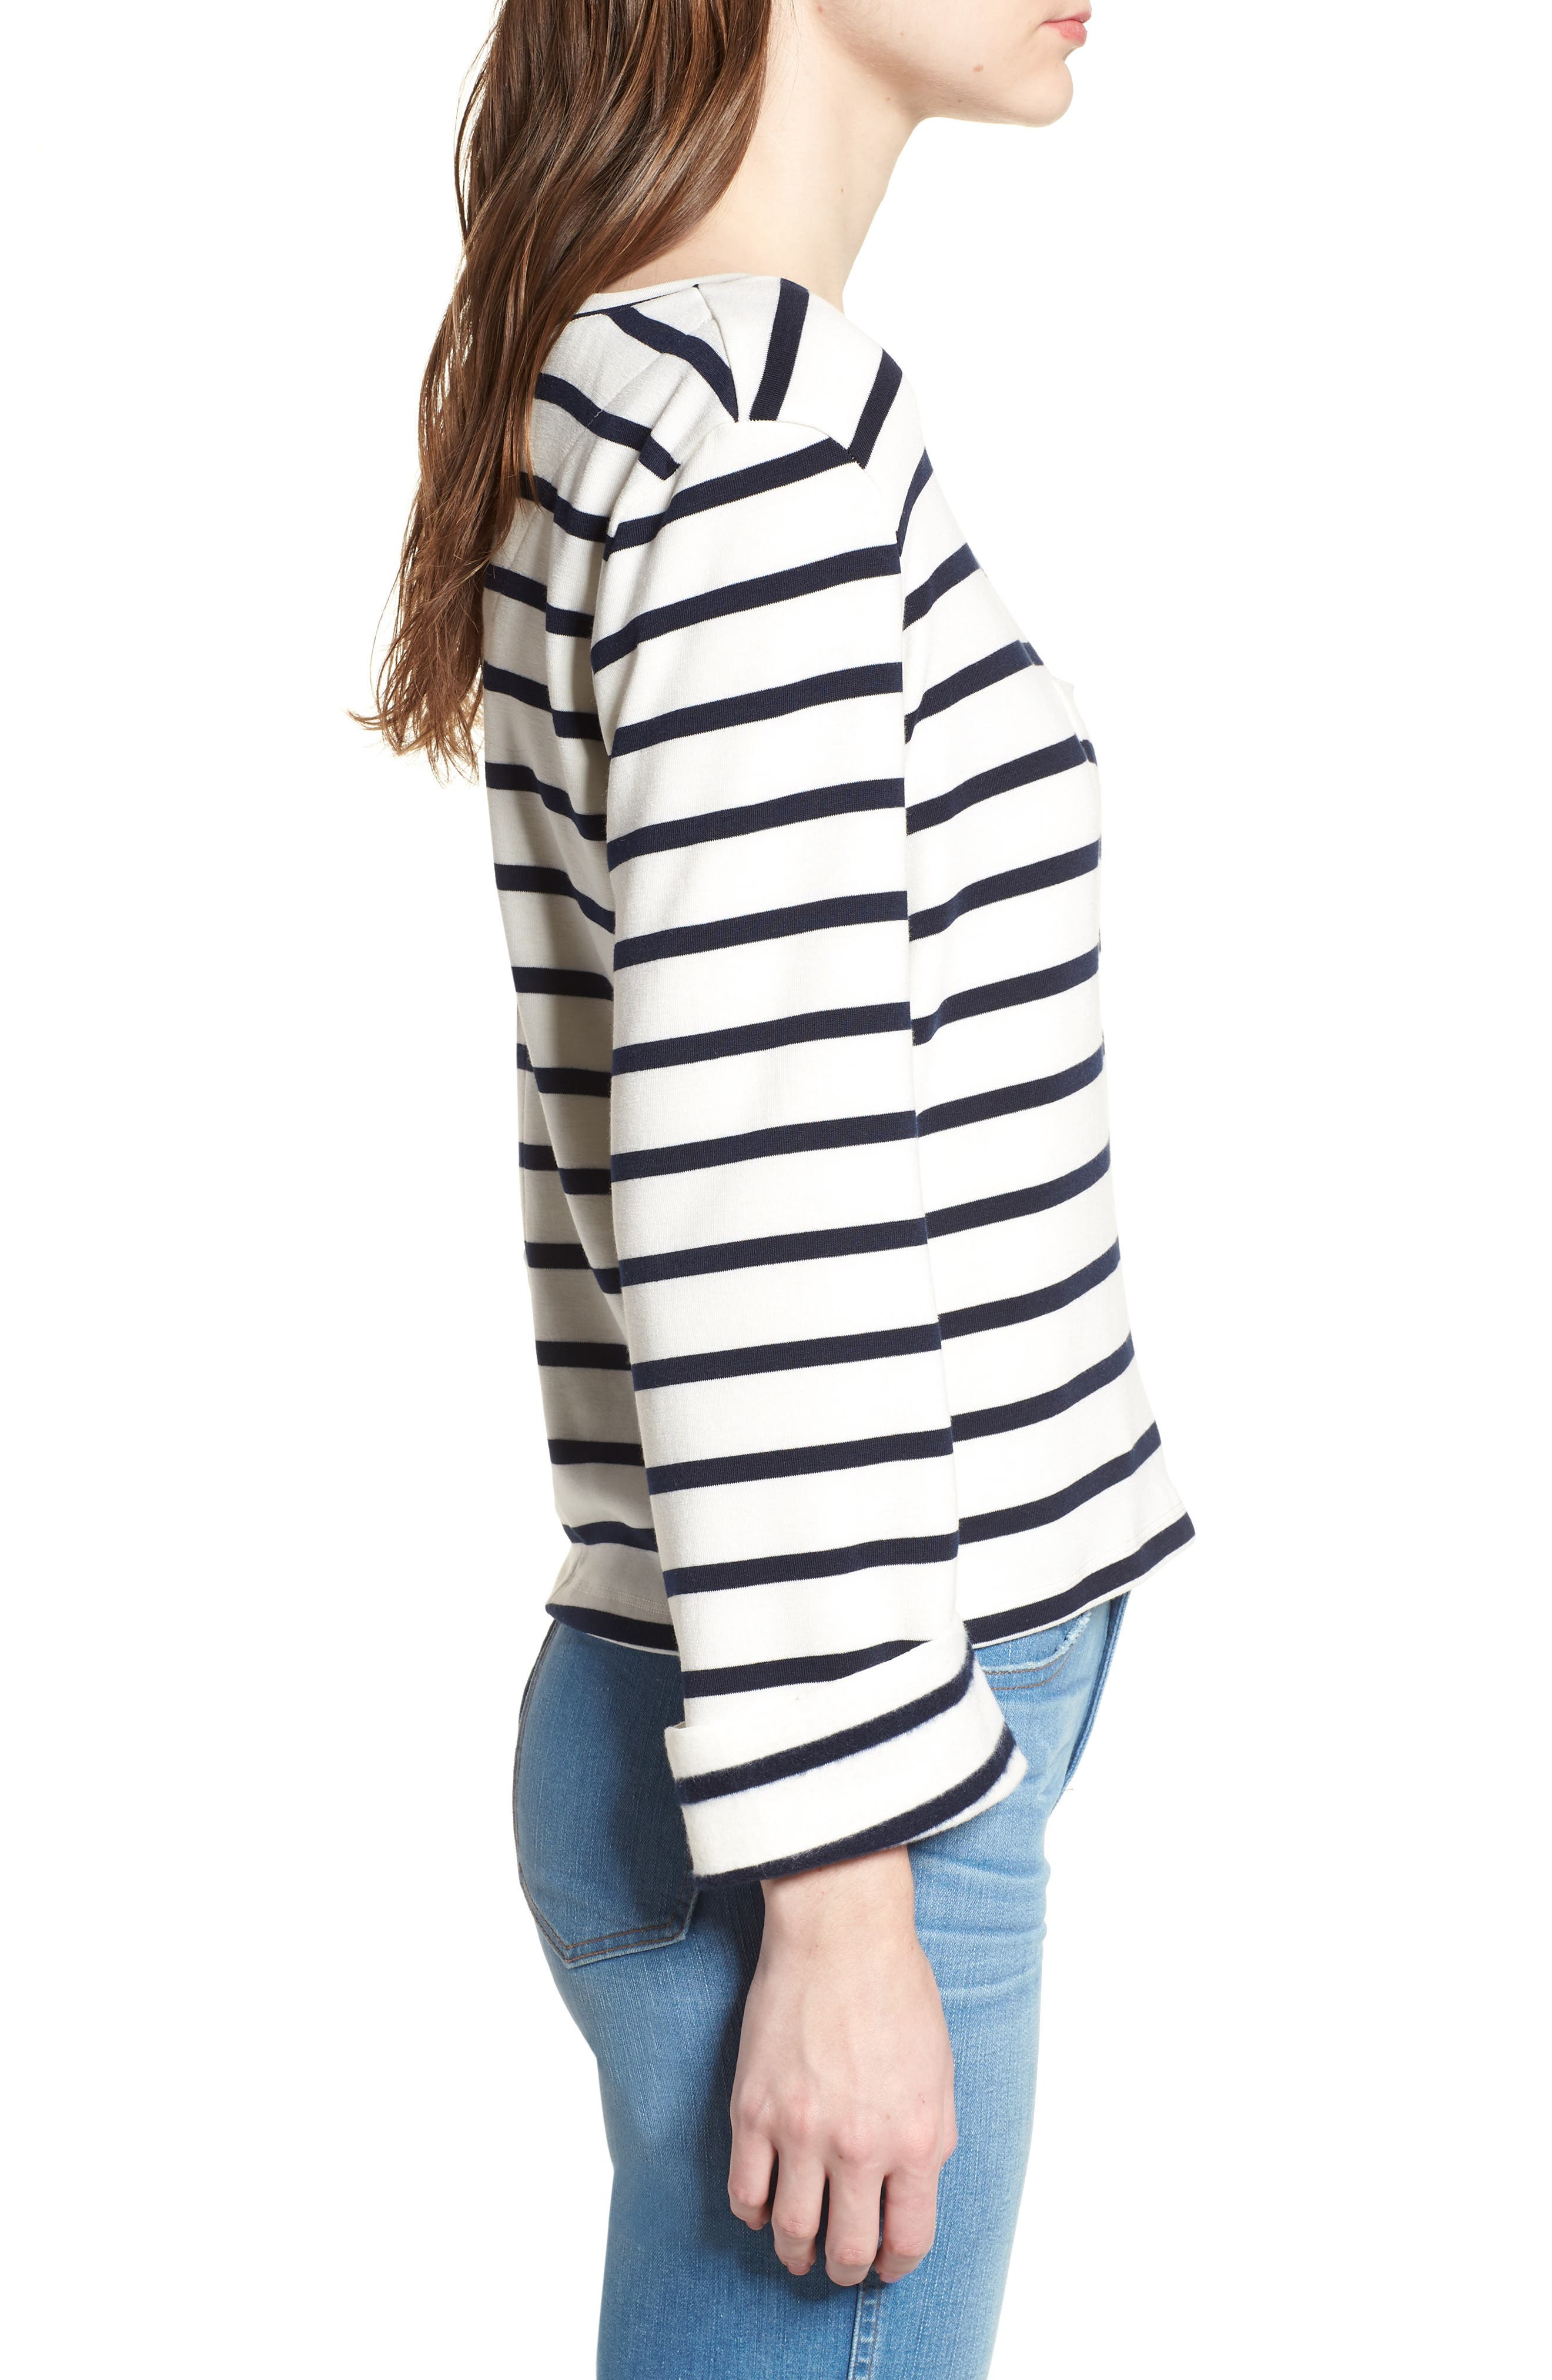 Bishop + Young Stripe Lace-Up Back Top,                             Alternate thumbnail 3, color,                             011